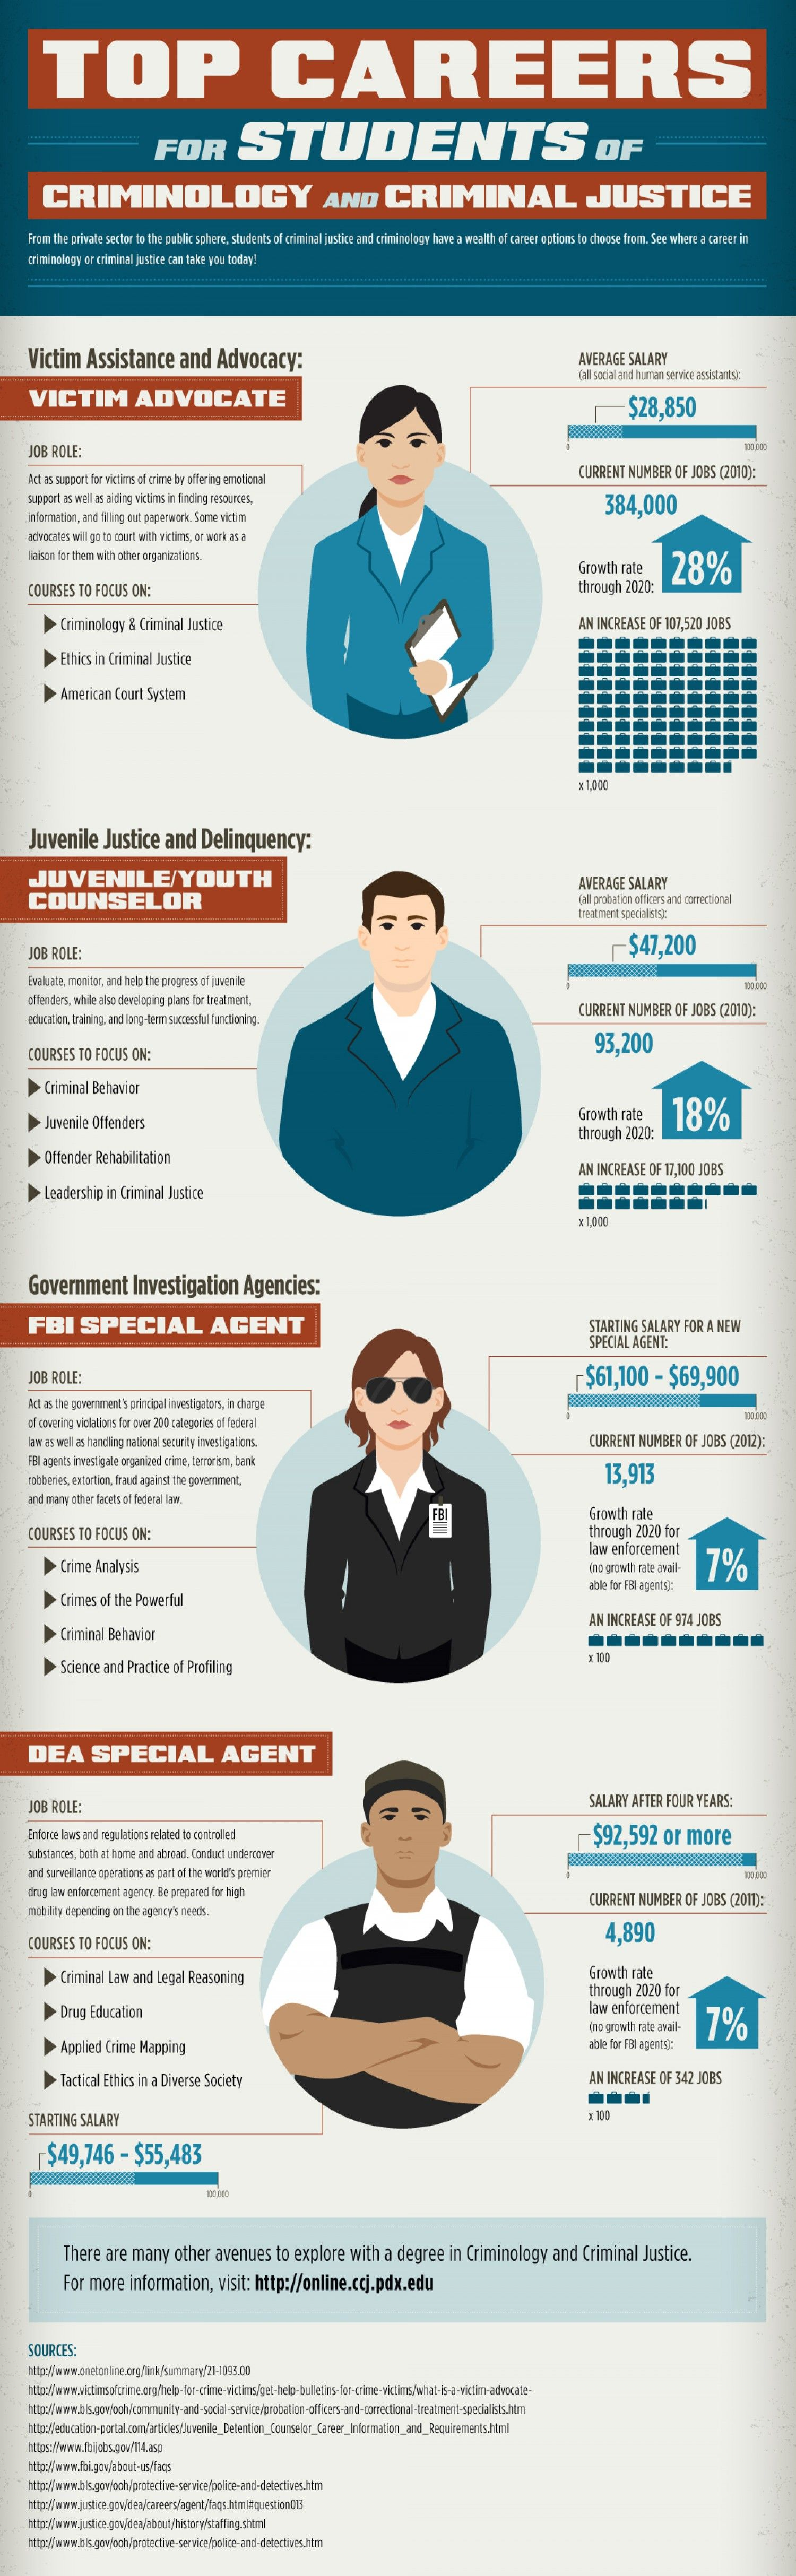 top careers for students of criminology and criminal justice top careers for students of criminology and criminal justice